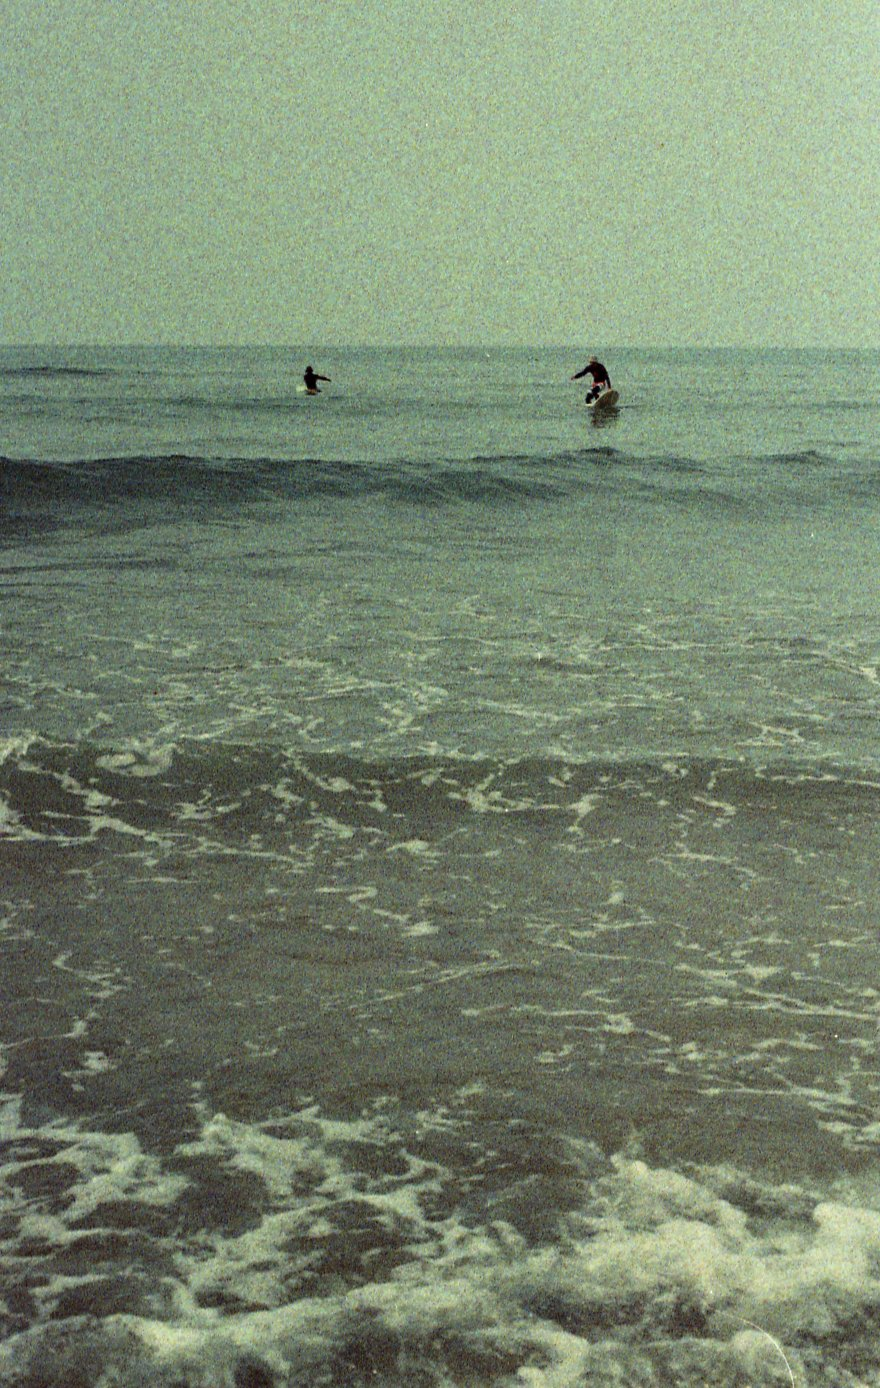 [FILM] TAIWAN Beach Taipei APR2017 Nikon FM(B) Adox Color Implosion 100 @200010